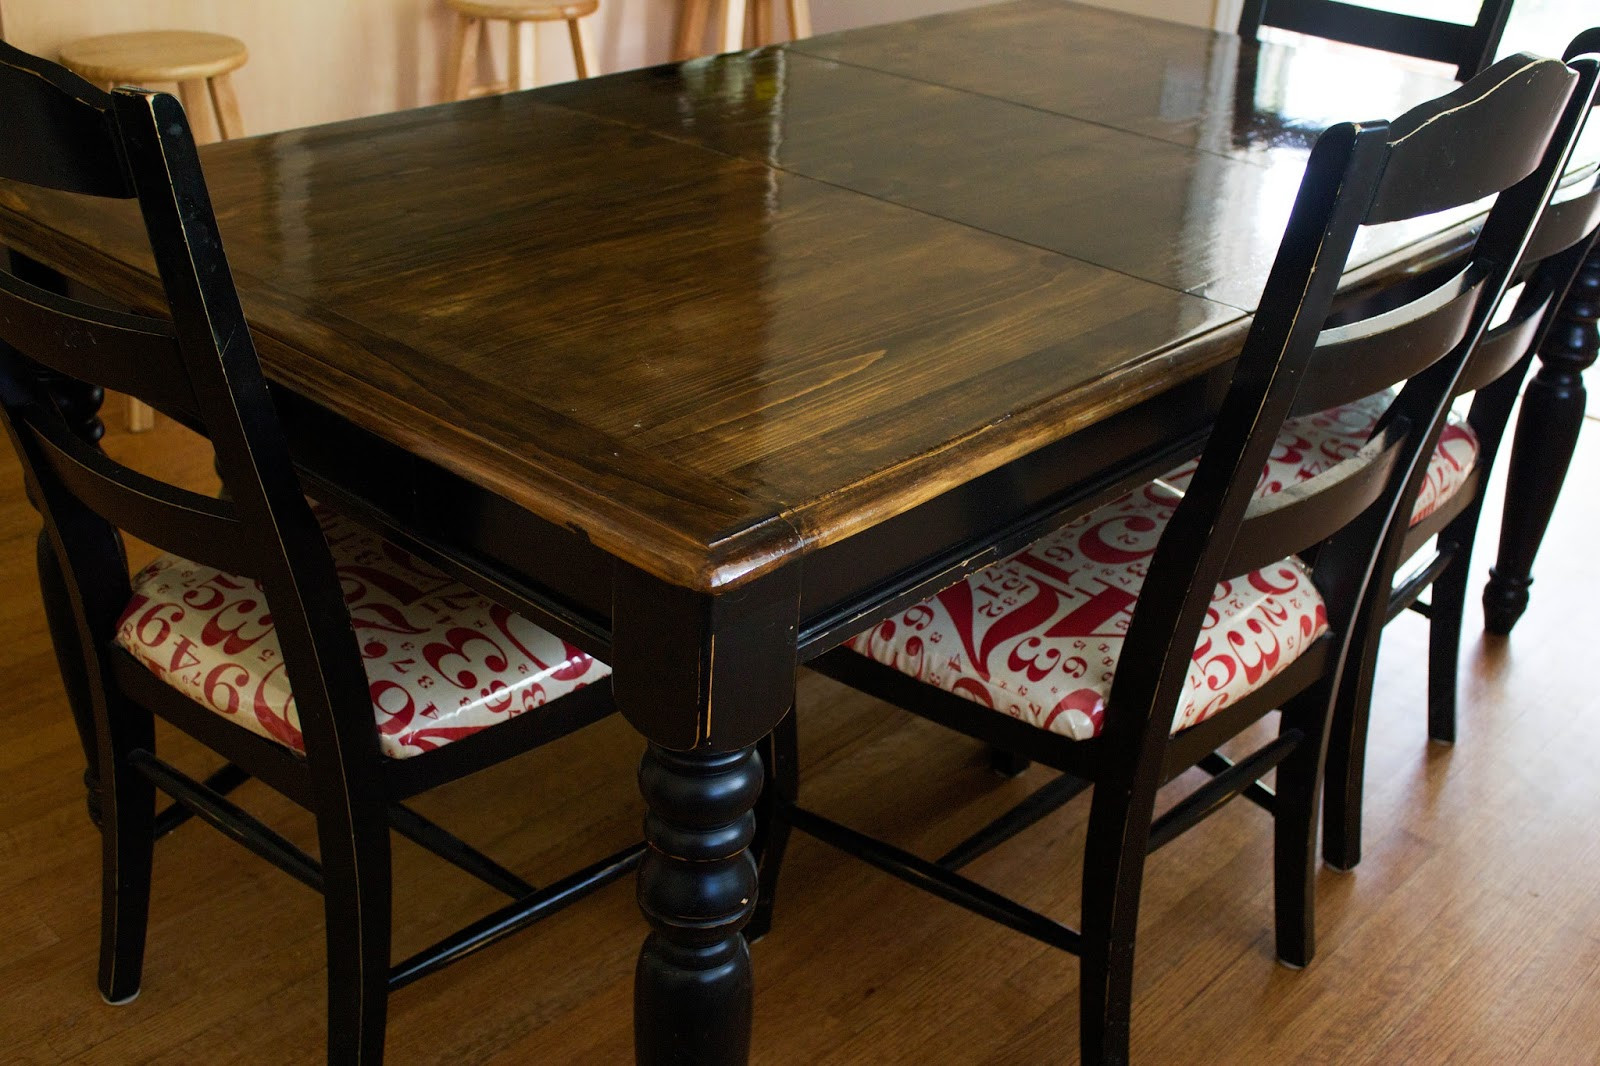 Best ideas about DIY Table Tops . Save or Pin do it yourself divas DIY Refinish Just a Table Top and Now.